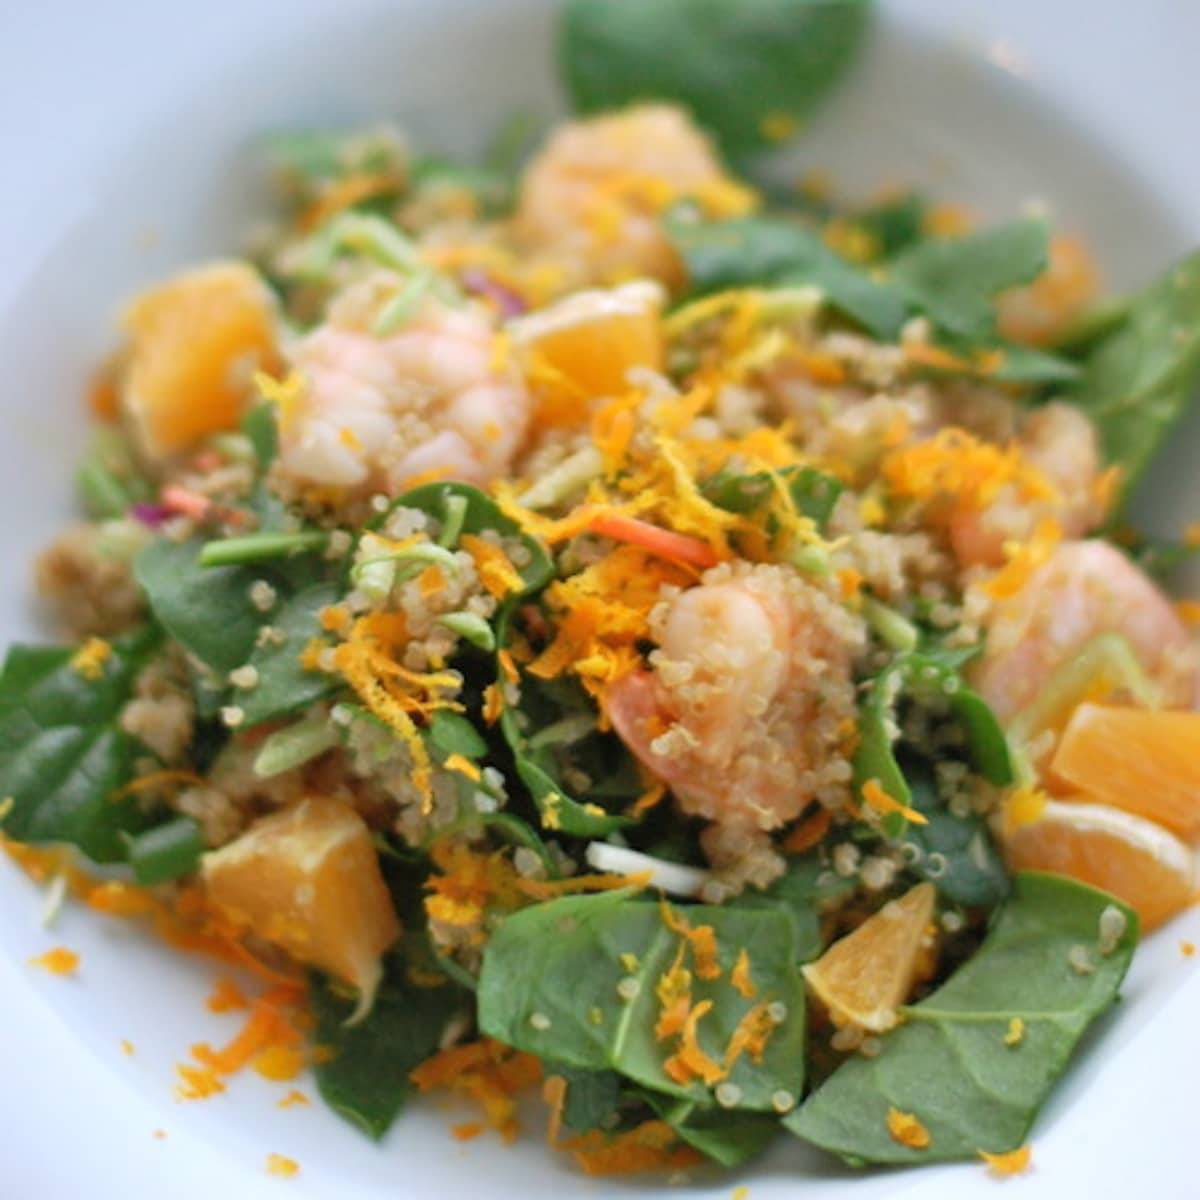 This shrimp and quinoa salad is super healthy, bright, and colorful ...